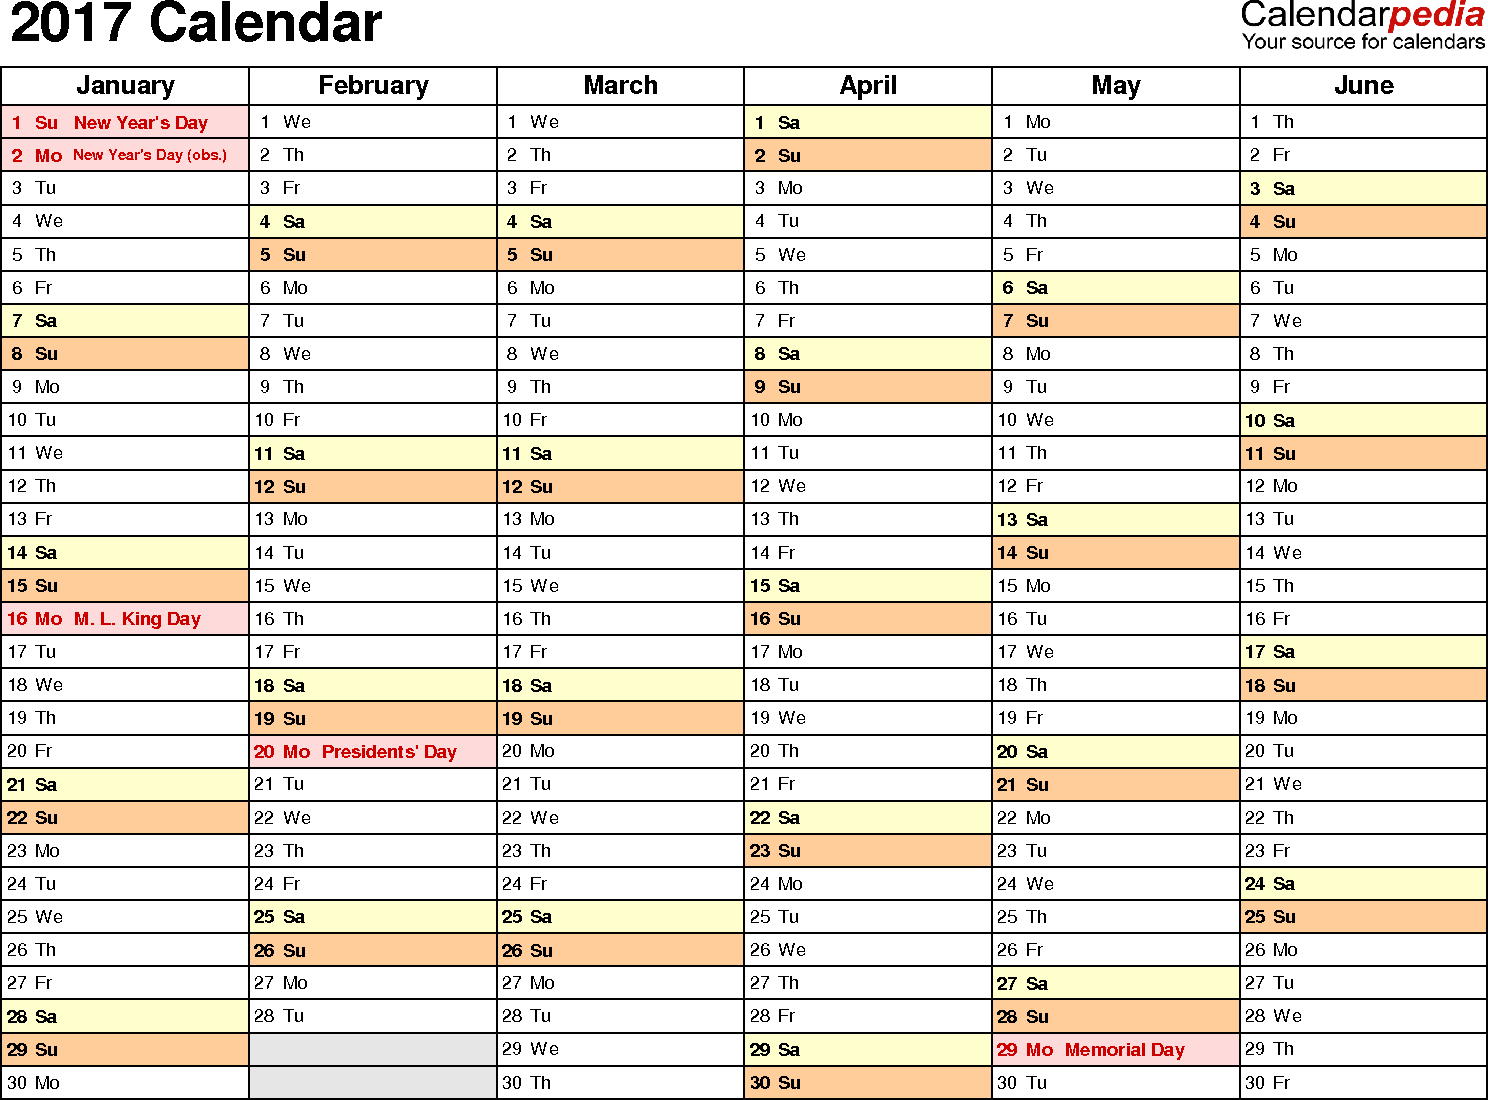 Ediblewildsus  Sweet  Calendar  Download  Free Printable Excel Templates Xls With Magnificent Template   Calendar For Excel Months Horizontally  Pages Landscape Orientation With Attractive And Excel Also How To Do A Vlookup In Excel In Addition Standard Deviation In Excel  And Highlighting In Excel As Well As How To Set Print Area In Excel  Additionally Insert Comment Excel From Calendarpediacom With Ediblewildsus  Magnificent  Calendar  Download  Free Printable Excel Templates Xls With Attractive Template   Calendar For Excel Months Horizontally  Pages Landscape Orientation And Sweet And Excel Also How To Do A Vlookup In Excel In Addition Standard Deviation In Excel  From Calendarpediacom